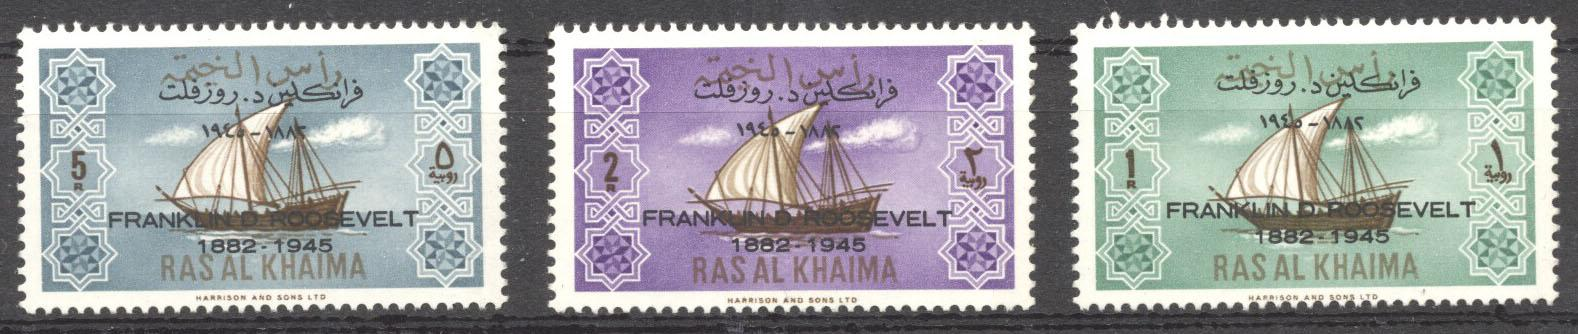 Stamps with Ship, Roosevelt (Franklin) from Ras al Khaima (image for product #142373)